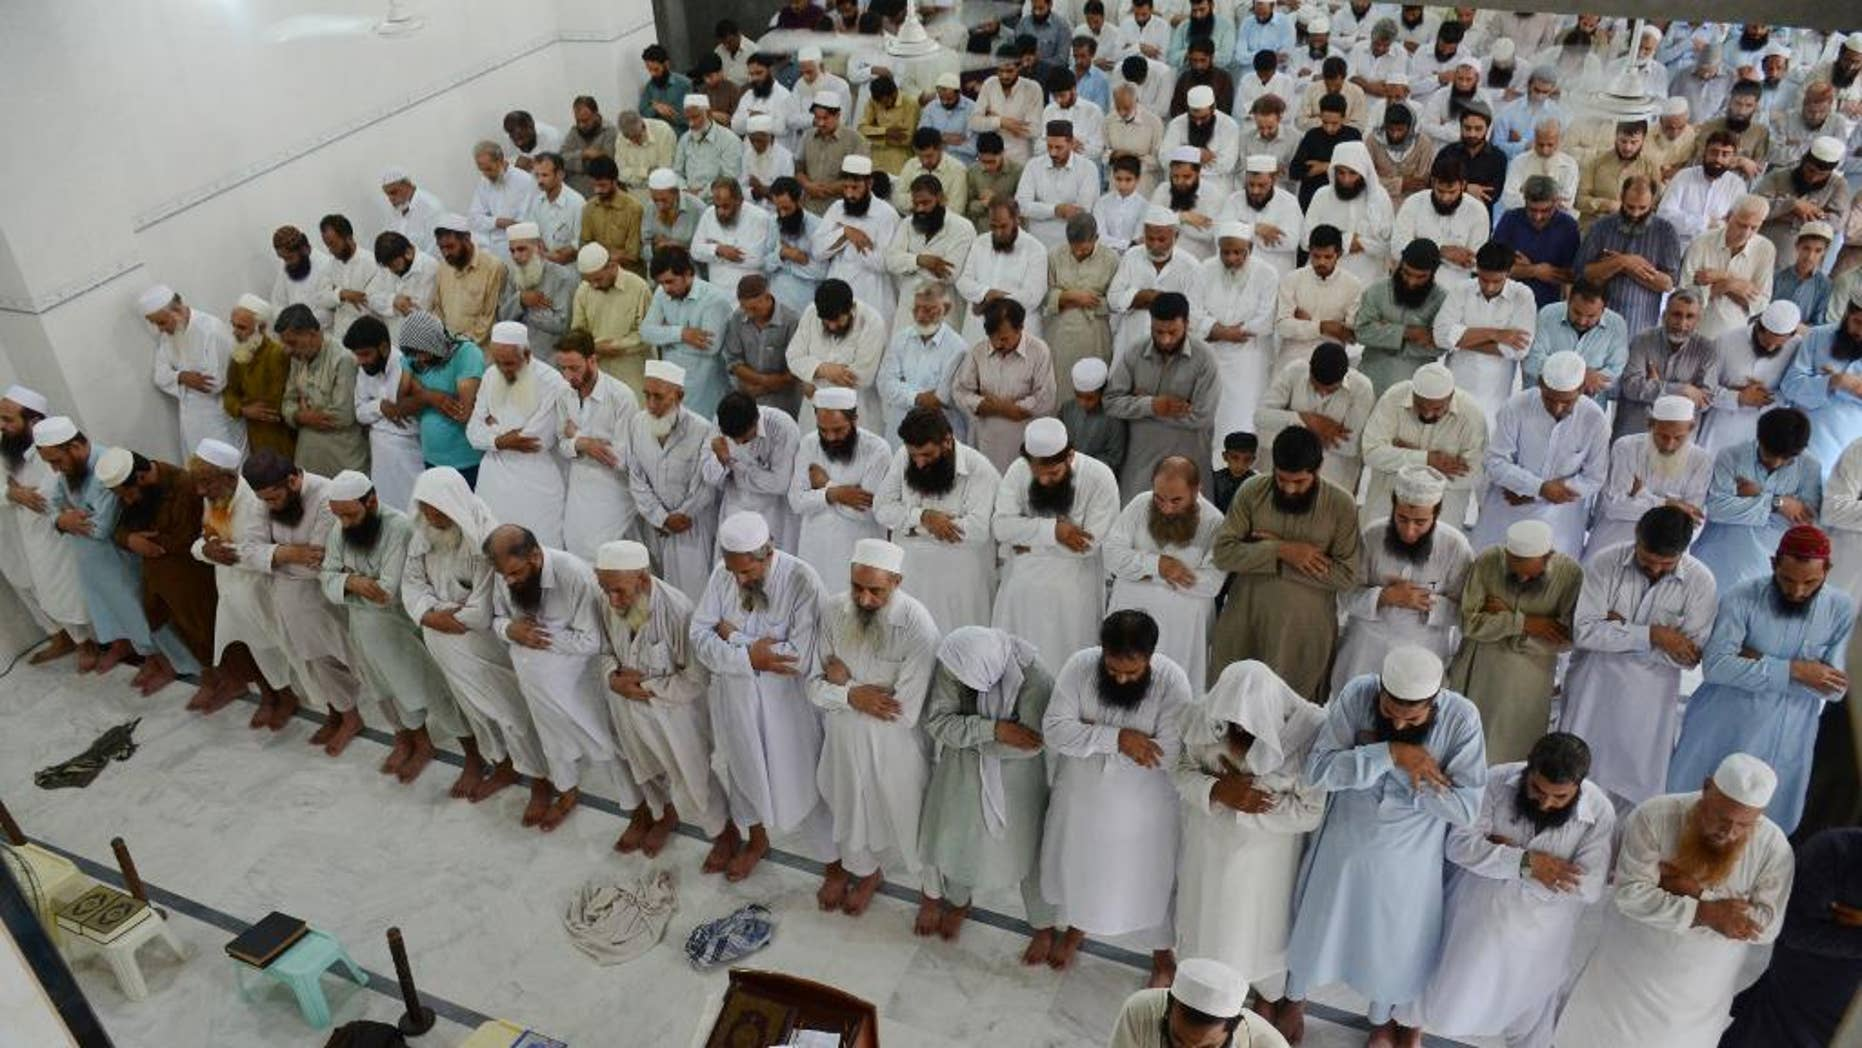 People offer funeral prayers for Taliban leader Mullah Mohammad Omar at a mosque in Peshawar, Pakistan, Friday, July 31, 2015. Afghanistan's Taliban on Thursday confirmed the death of Mullah Omar, who led the group's self-styled Islamic emirate in the 1990s, sheltered al-Qaida through the 9/11 attacks and led a 14-year insurgency against U.S. and NATO troops. (AP Photo/Mohammad Sajjad)